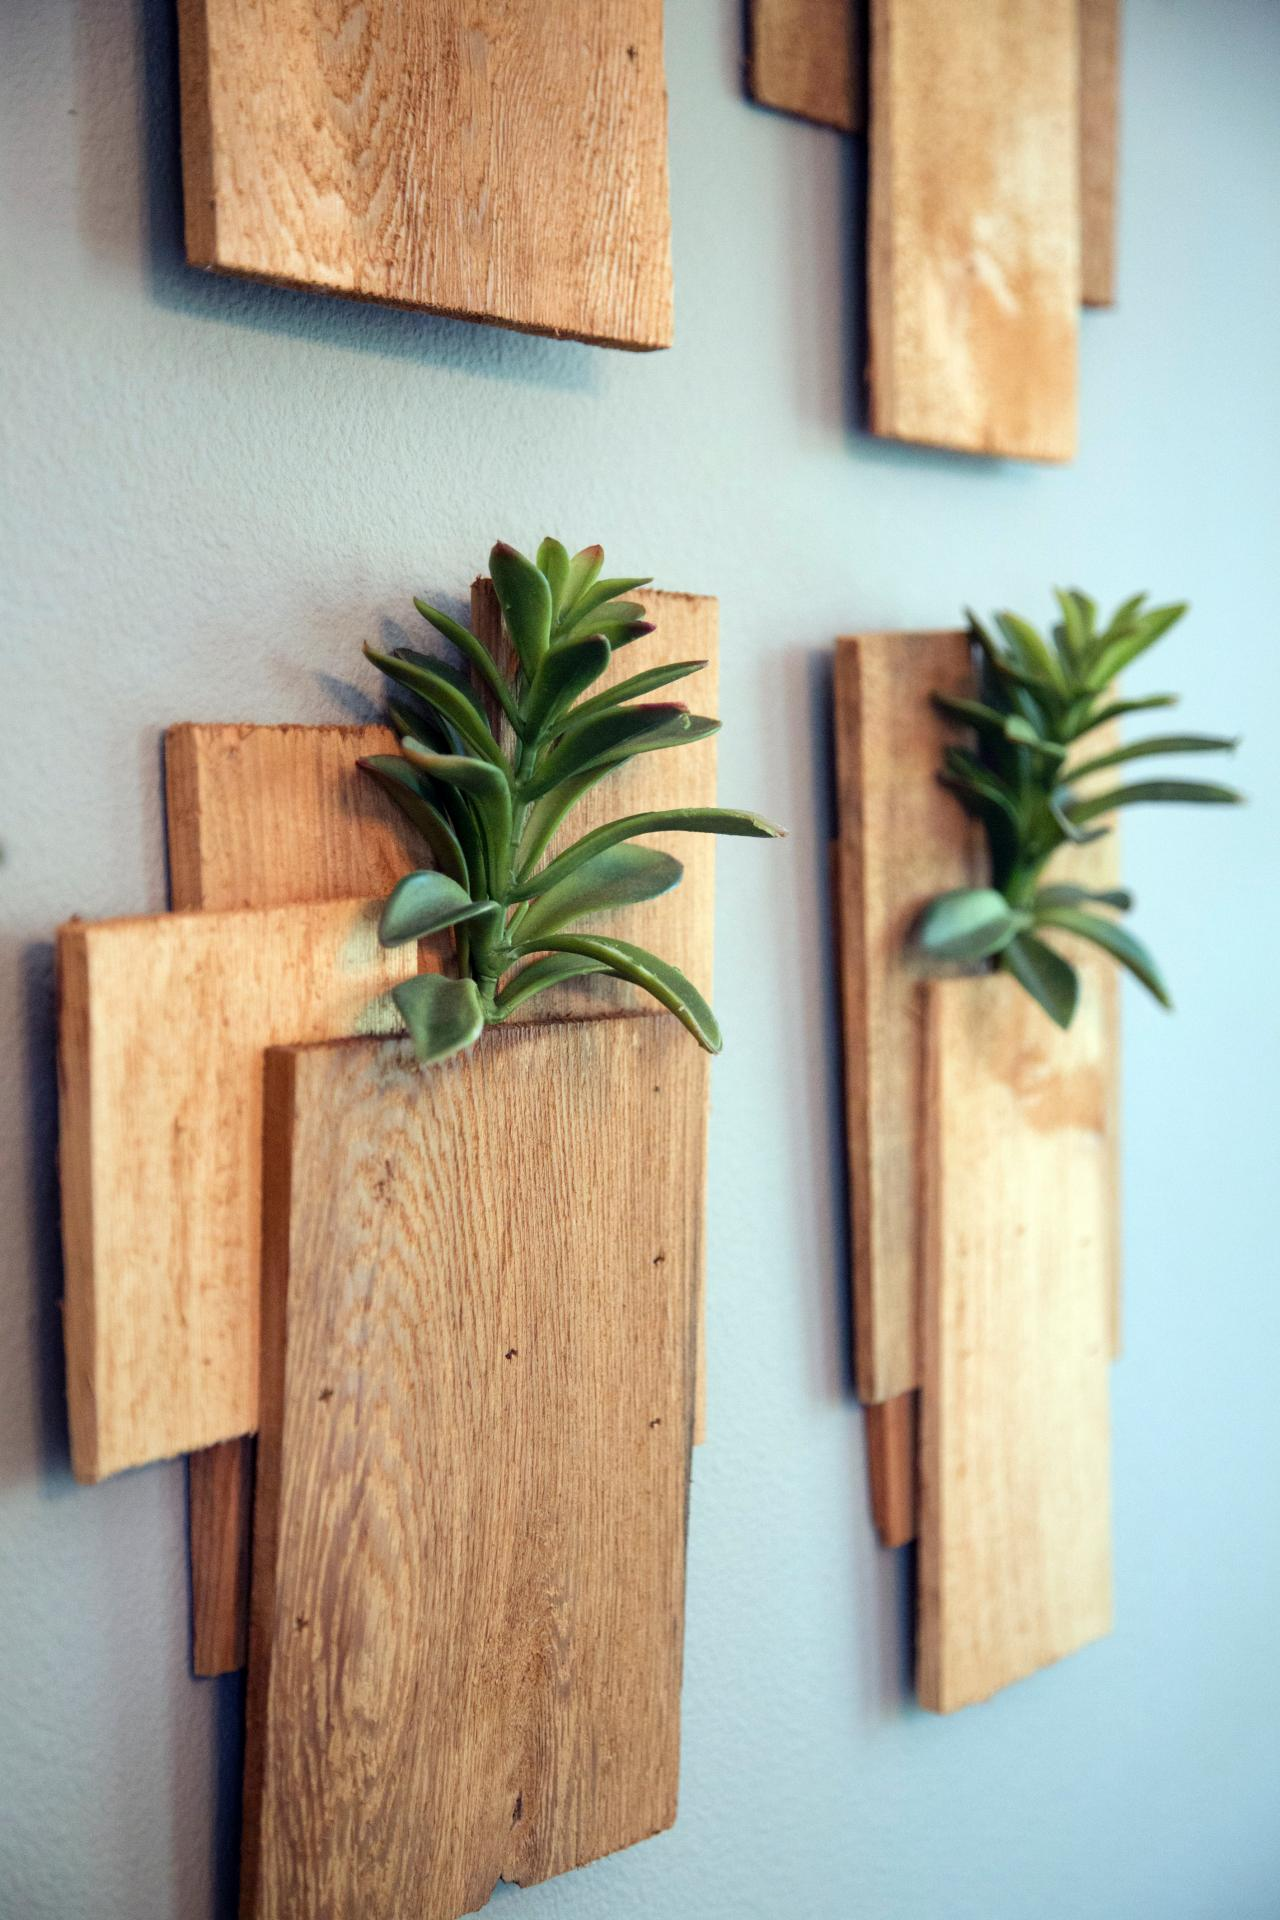 Wood Planks and Succulents as Wall Decor